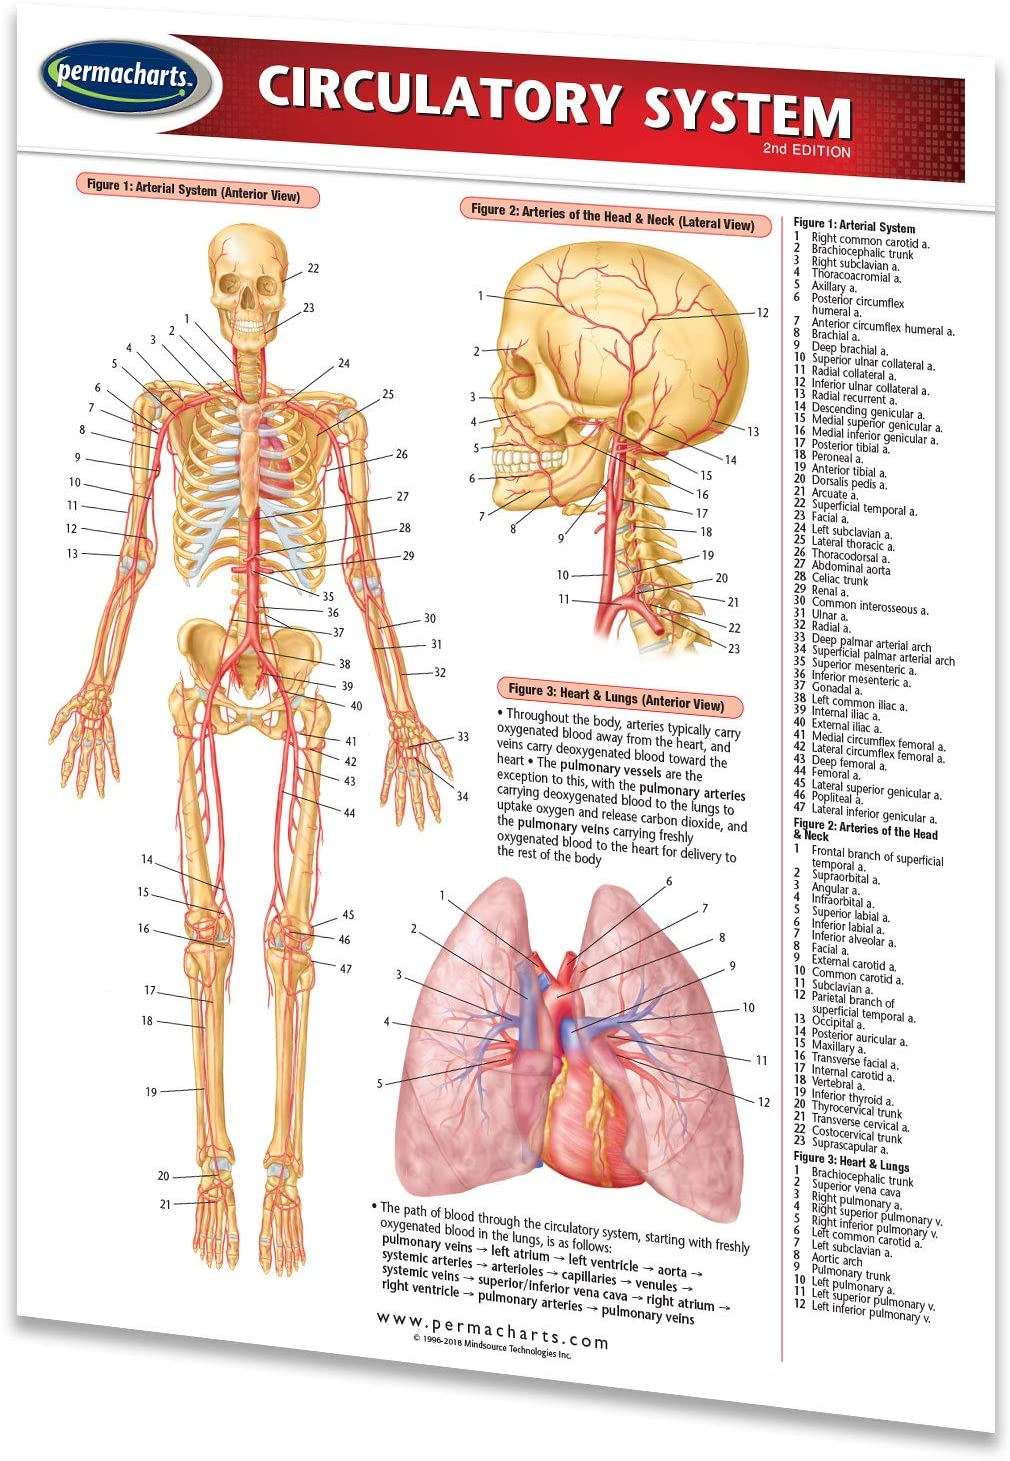 Circulatory System Guide - Medical Quick Reference Guide by Permacharts